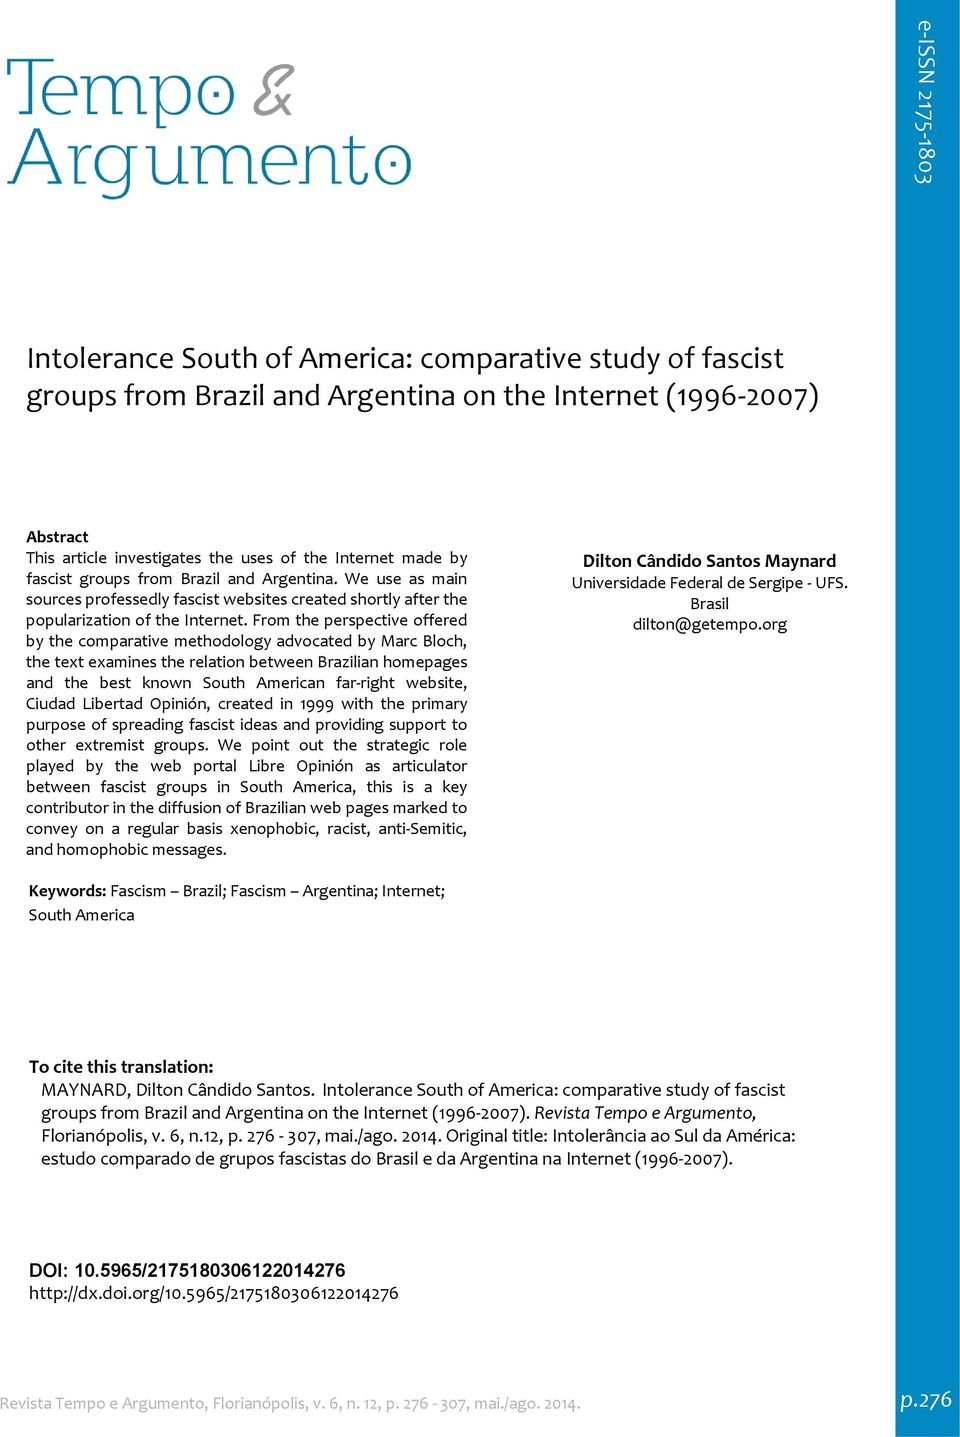 From the perspective offered by the comparative methodology advocated by Marc Bloch, the text examines the relation between Brazilian homepages and the best known South American far right website,